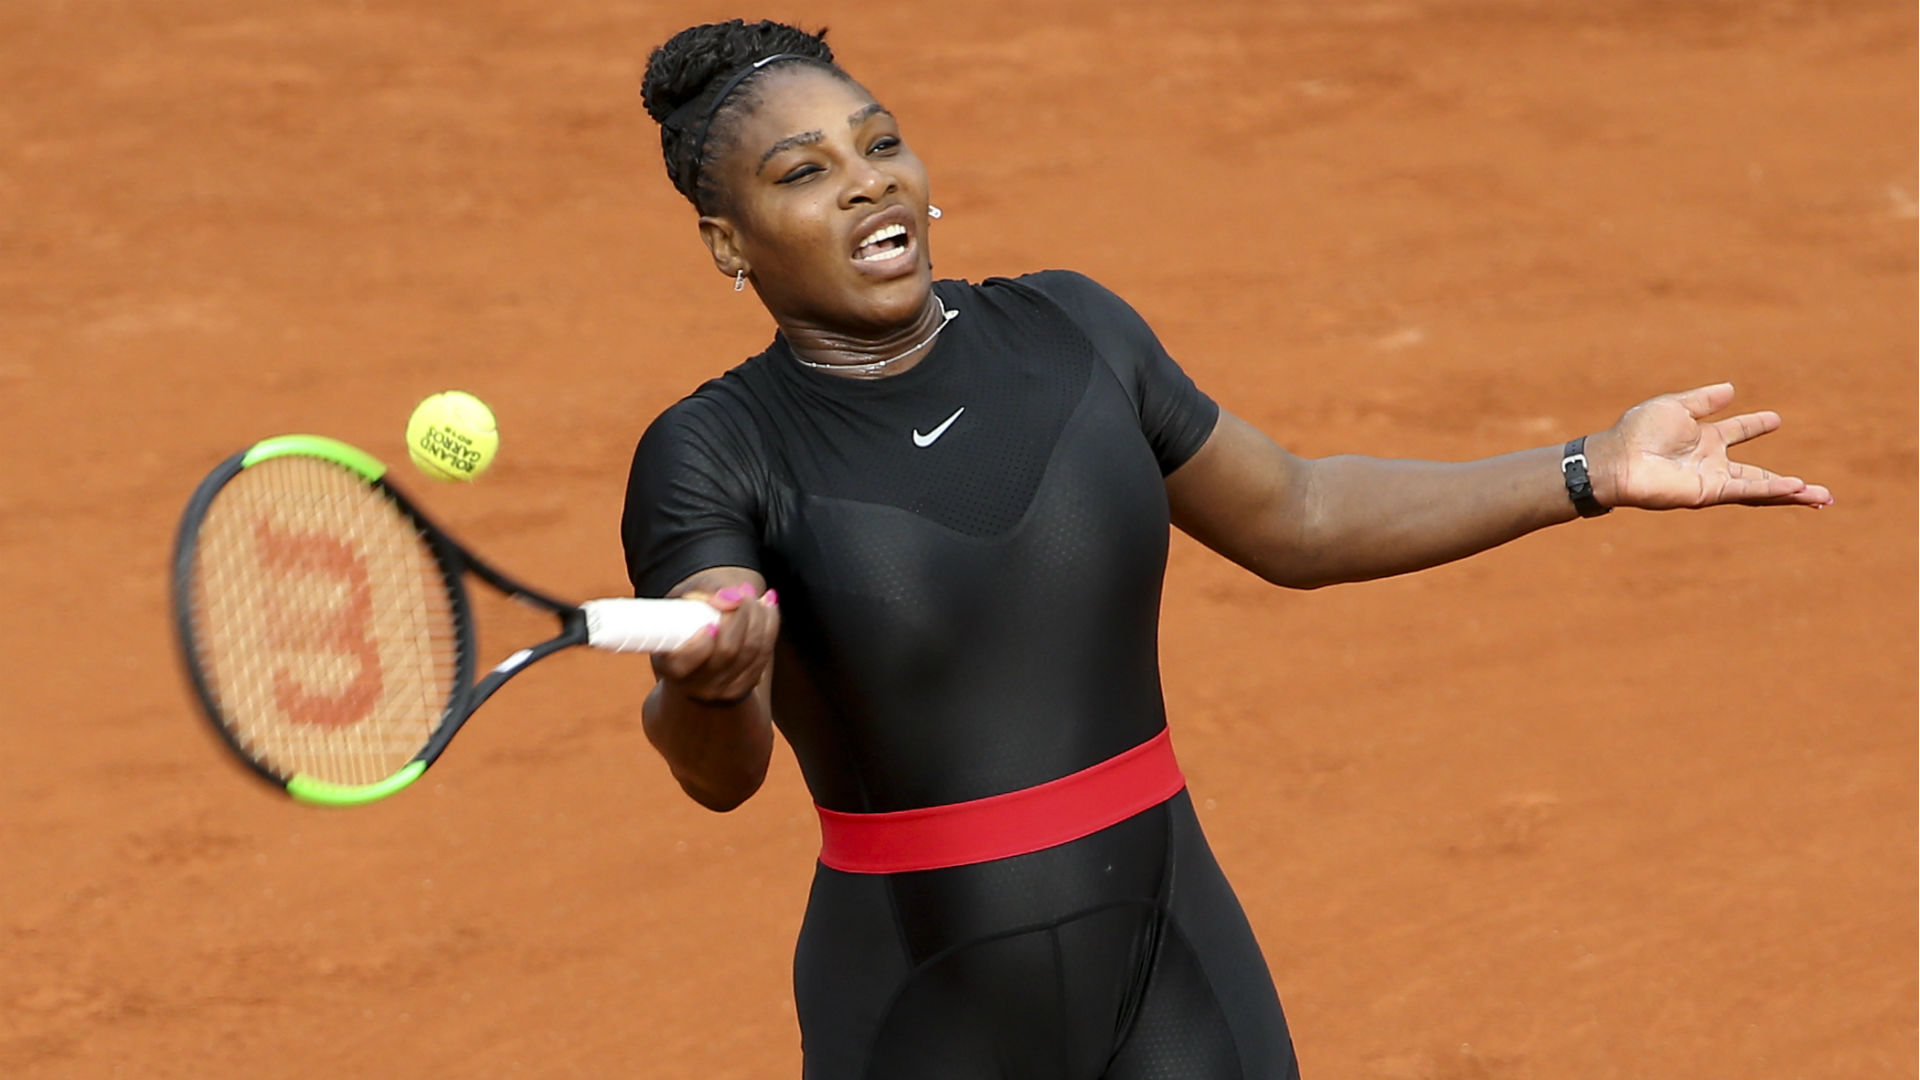 Serena Williams rock black 'catsuit' at French Open